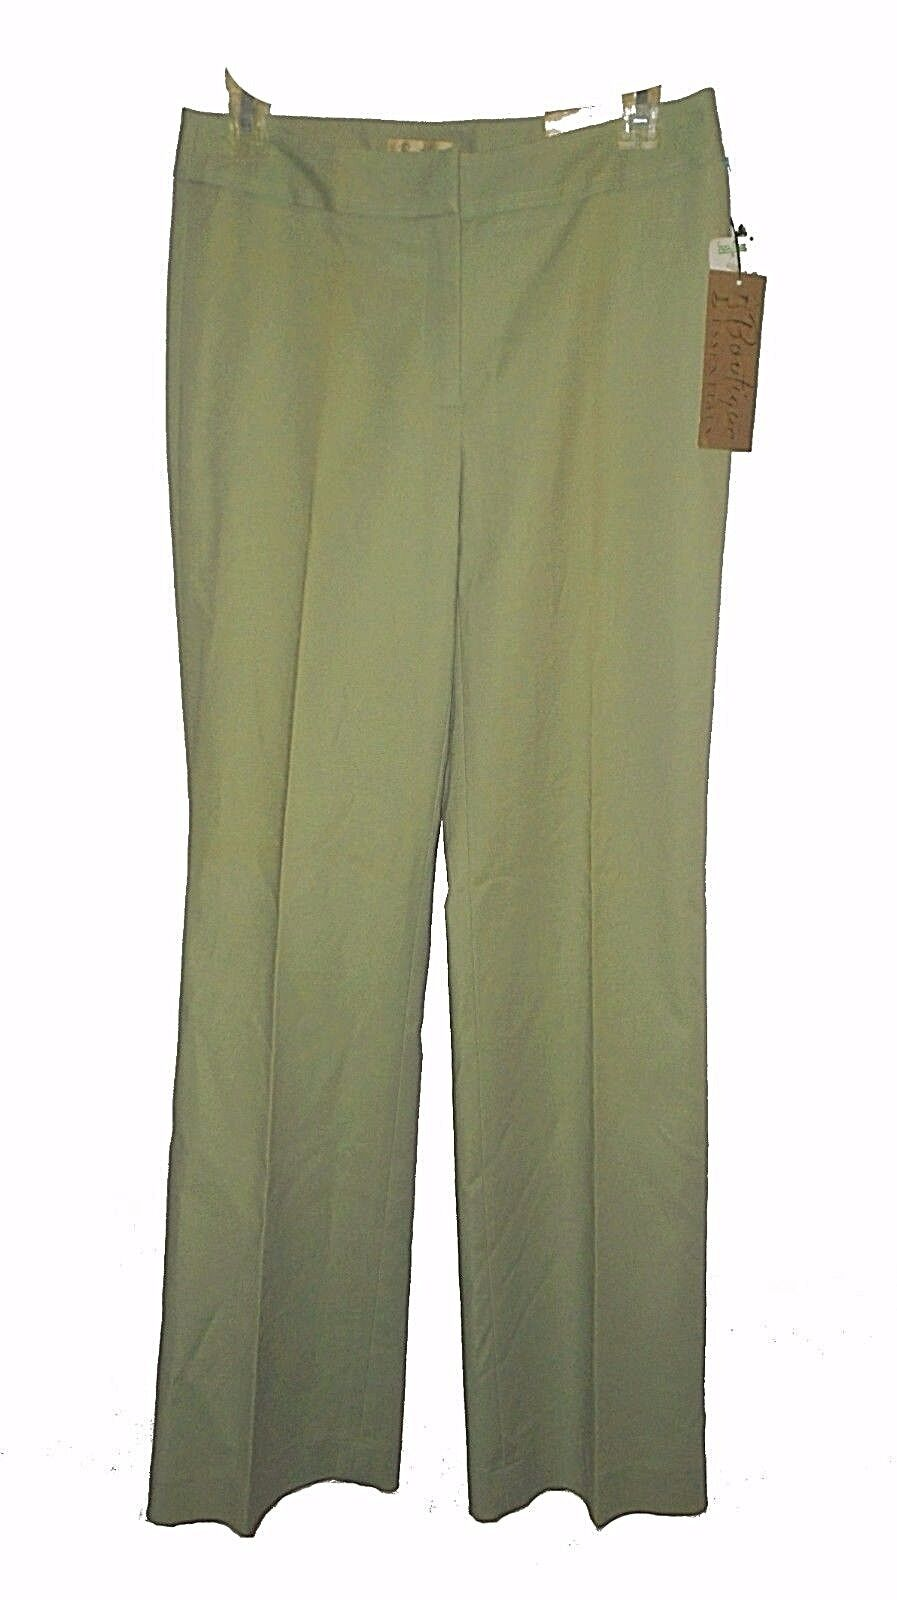 New Pants, Boutique Essentials, Cotton Stretch Loden-Grün MSRP- 89.00  2